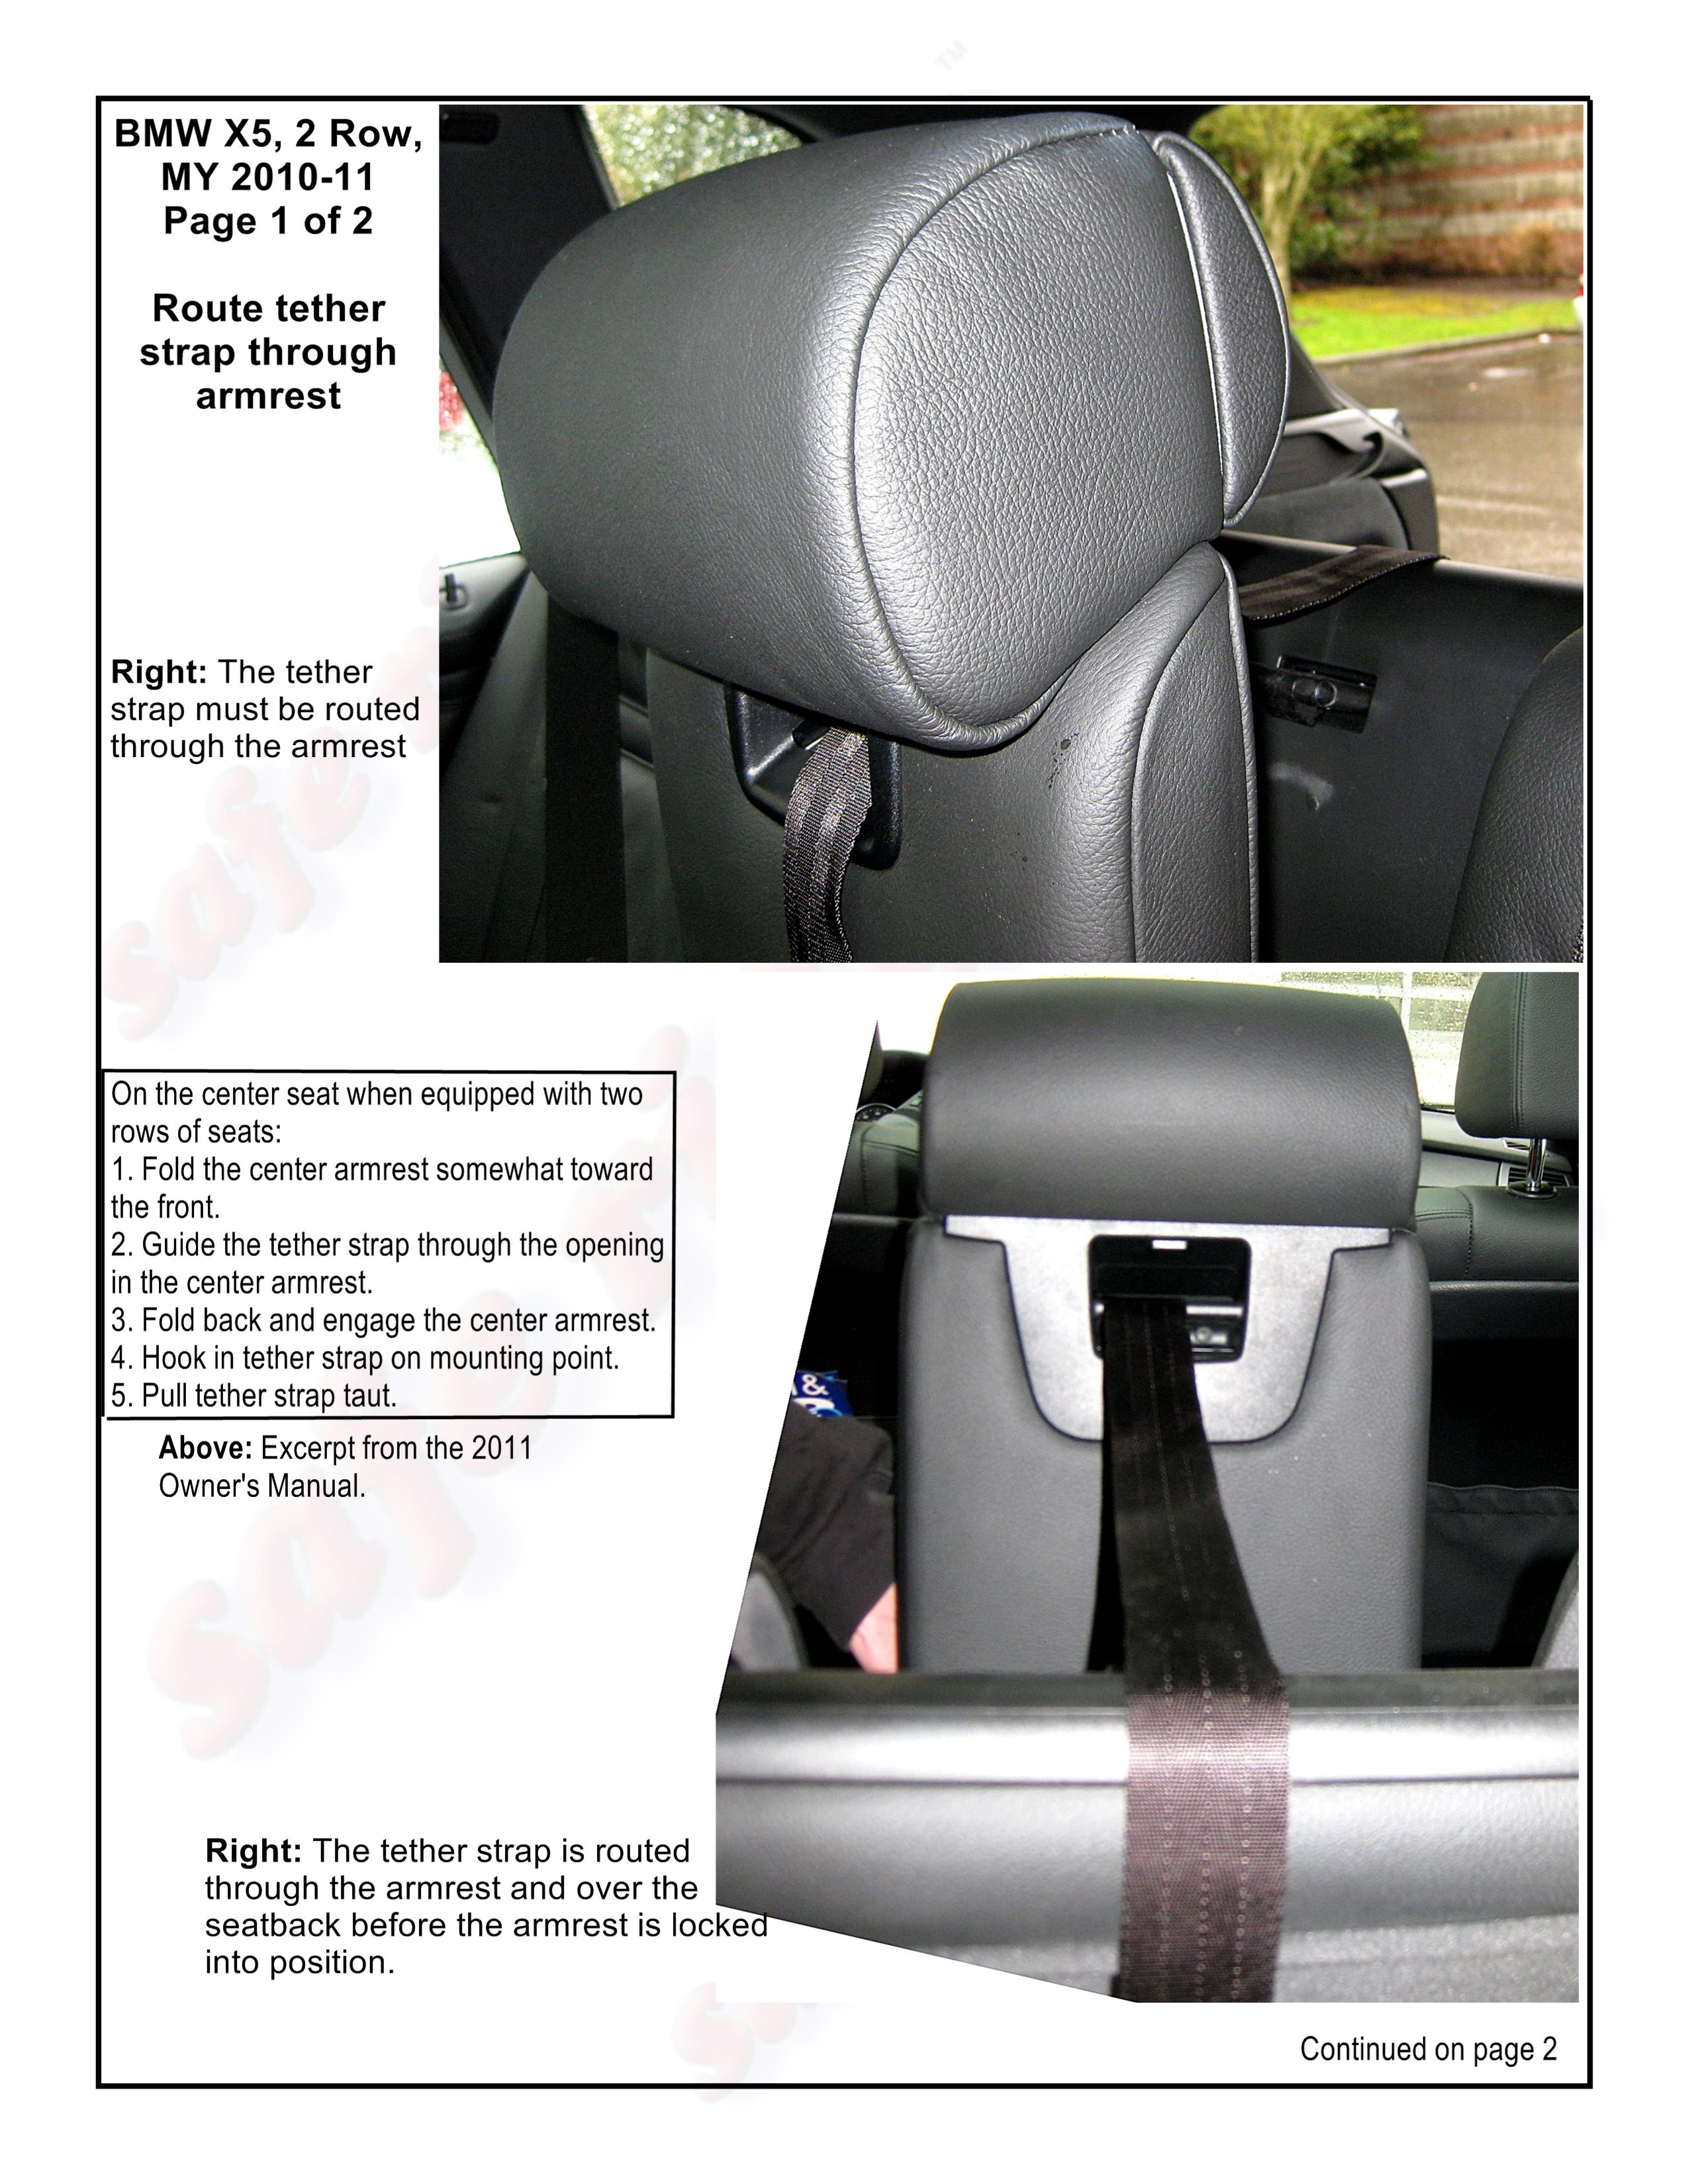 BMW X5, 2nd Row, MY 2010-2011, Page 1 of 2